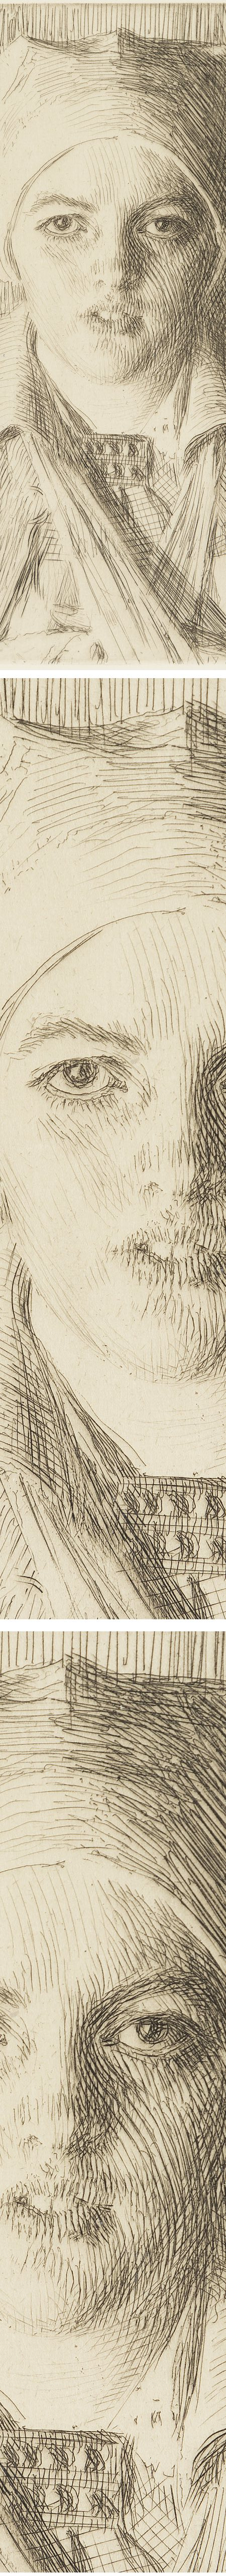 Gulli II, Anders Zorn, etching (details)